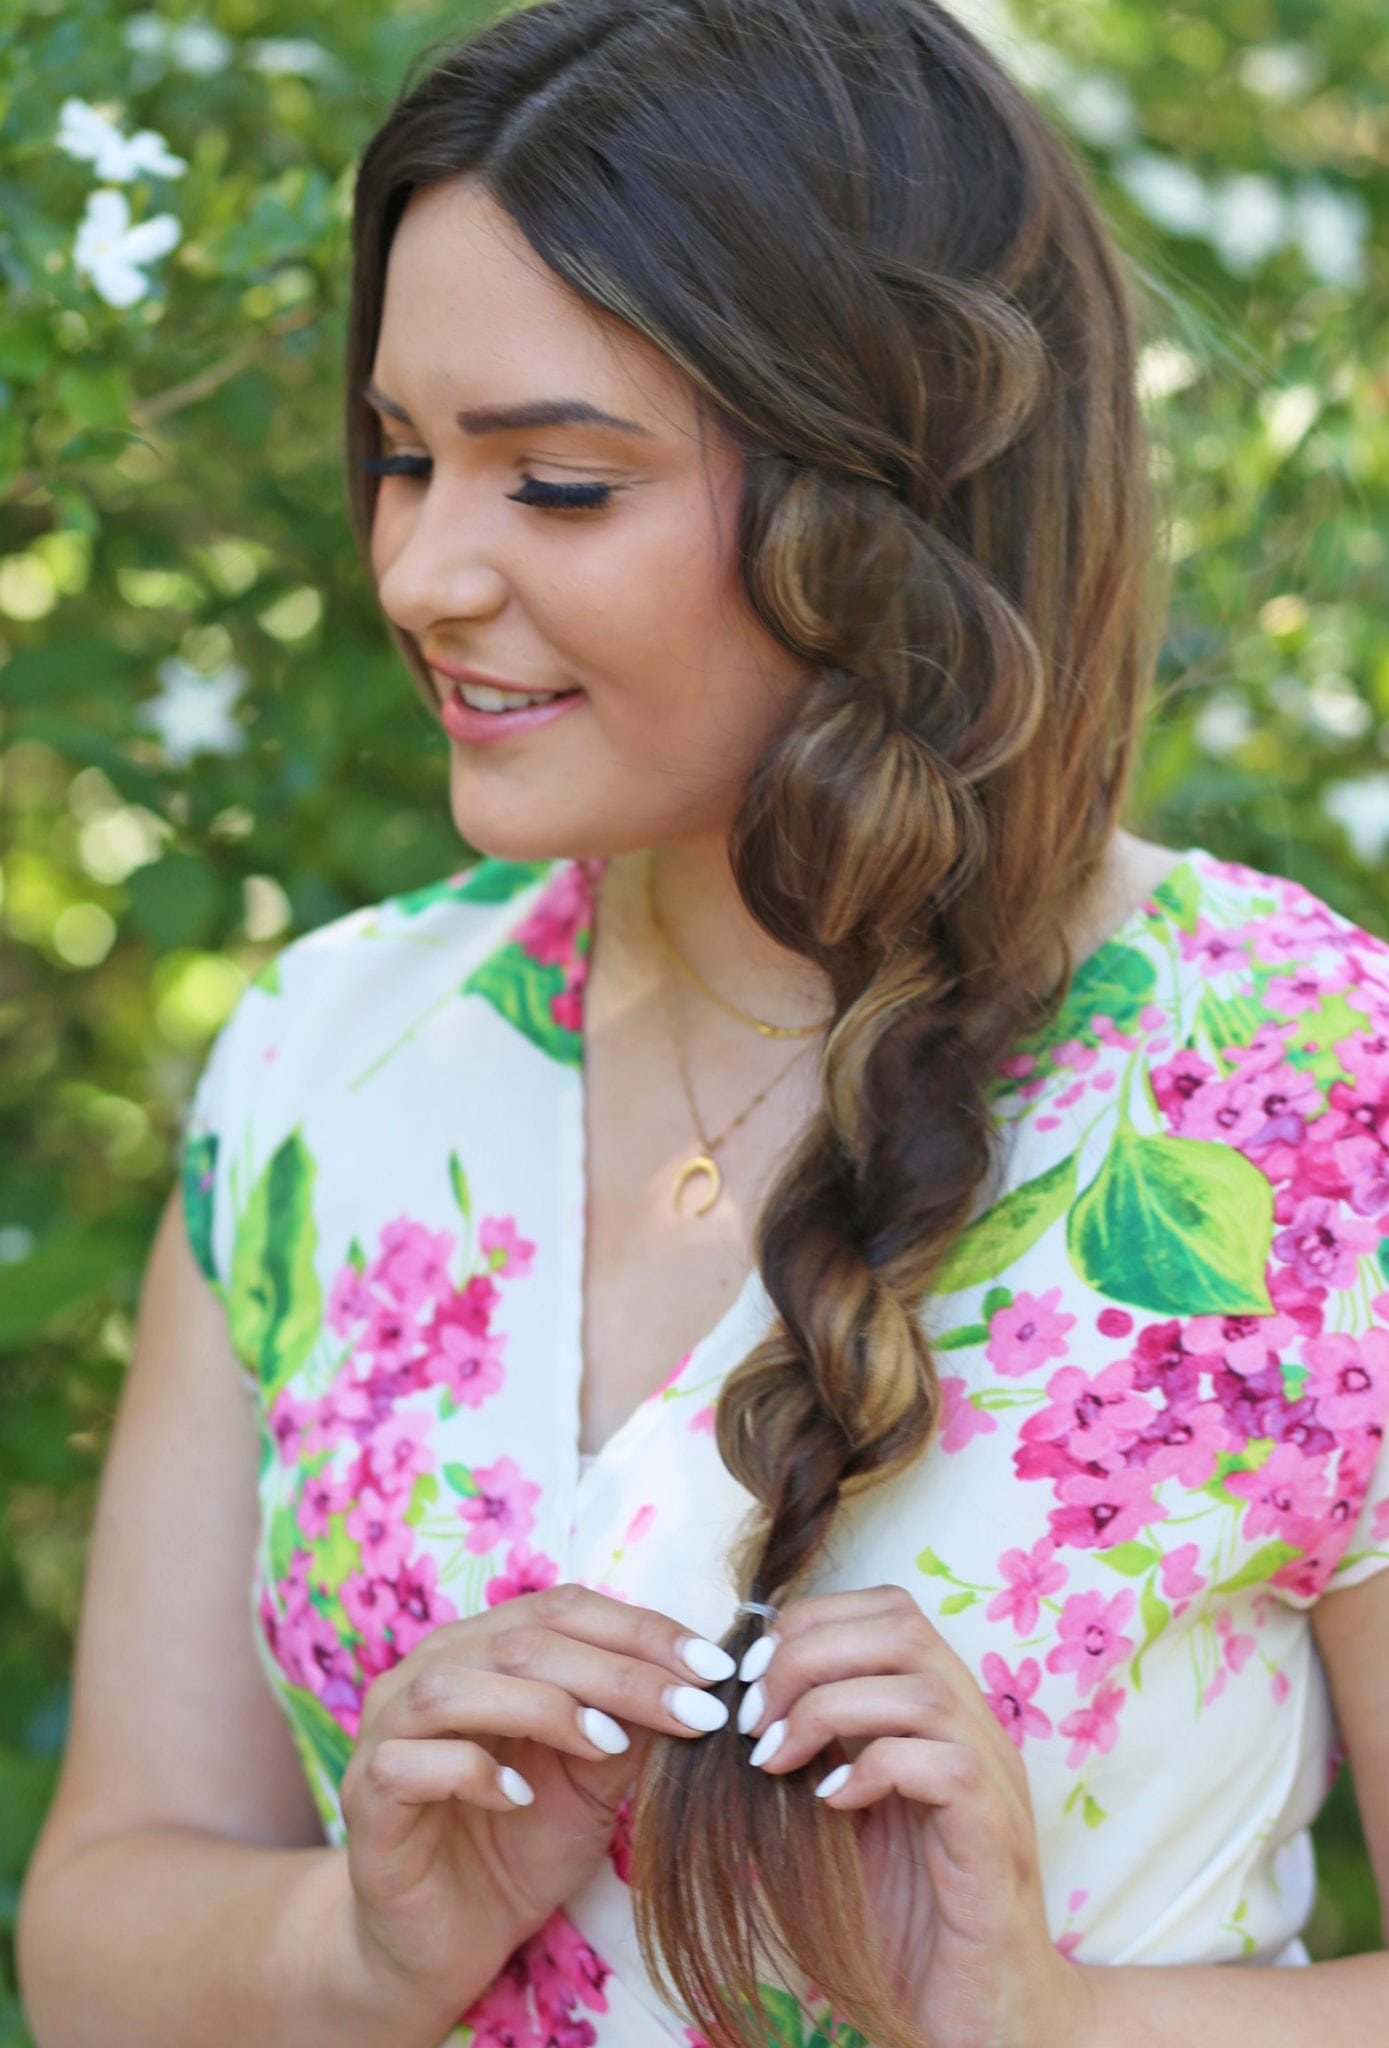 Mash Elle beauty blogger | Redken | side twist hair | no extensions hairstyle | long hair | spring style | floral romper pink and white